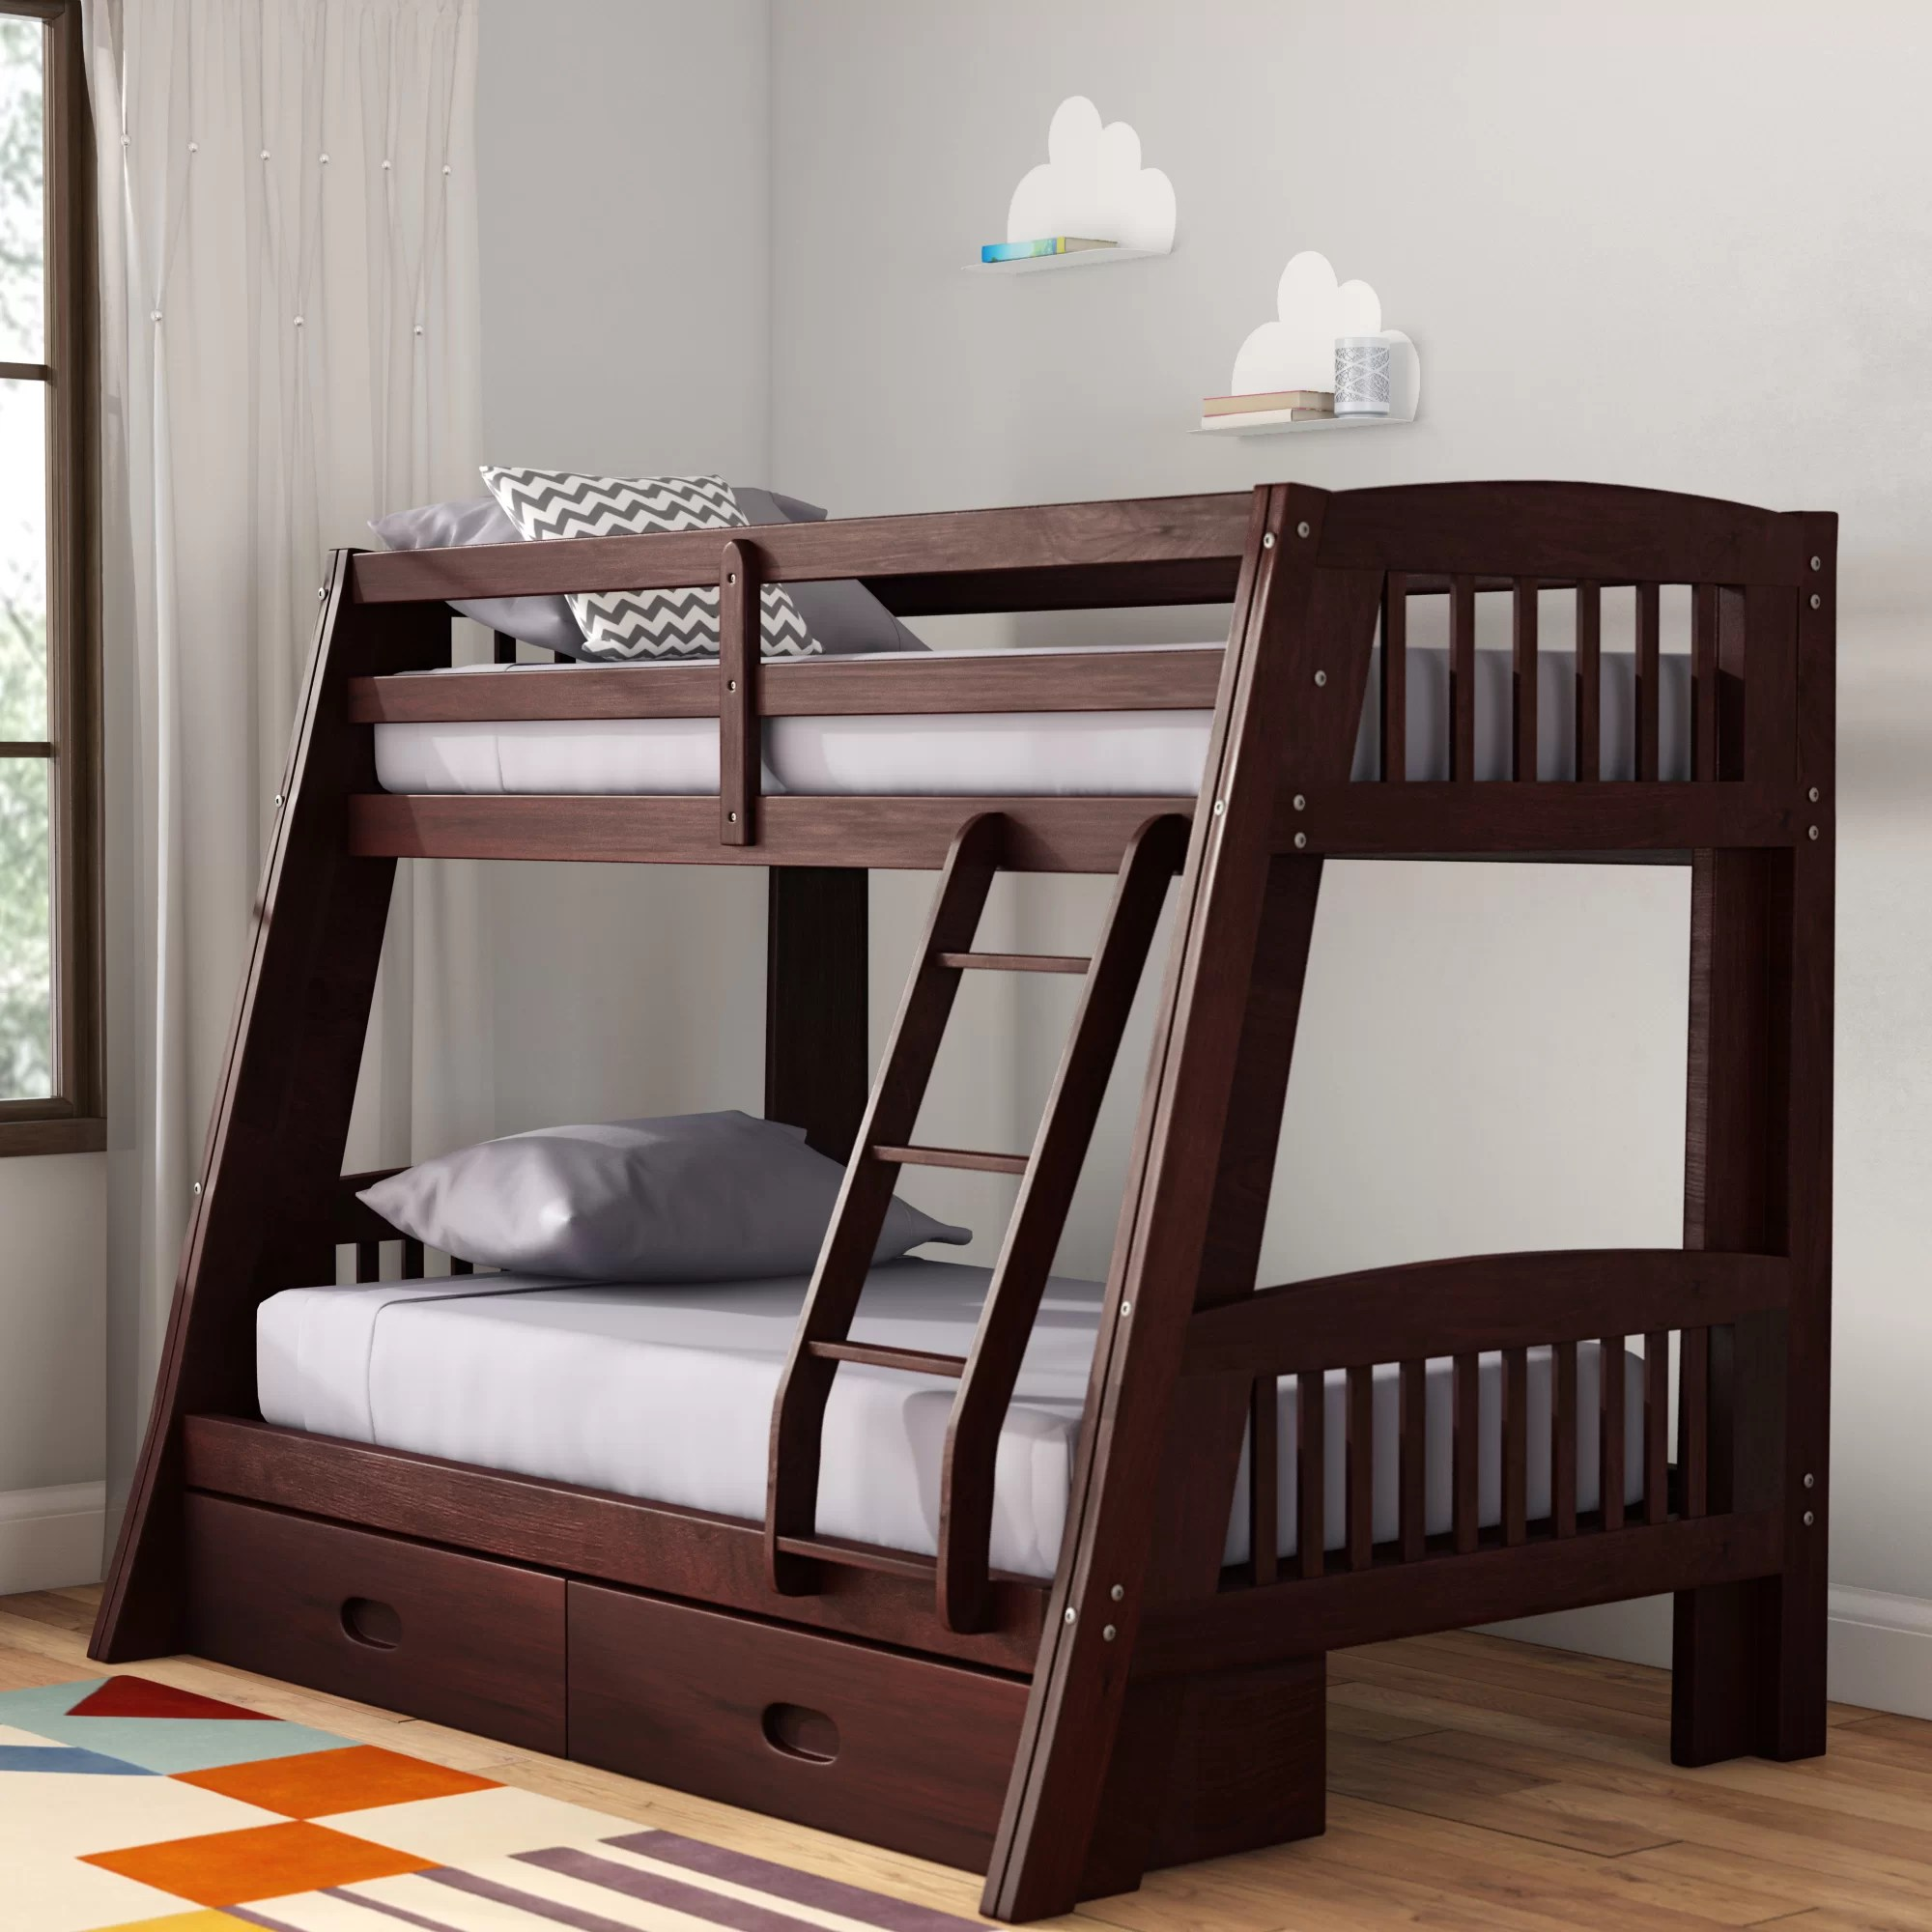 Double Bunks For Sale Madyson Twin Over Full Bunk Bed With Storage